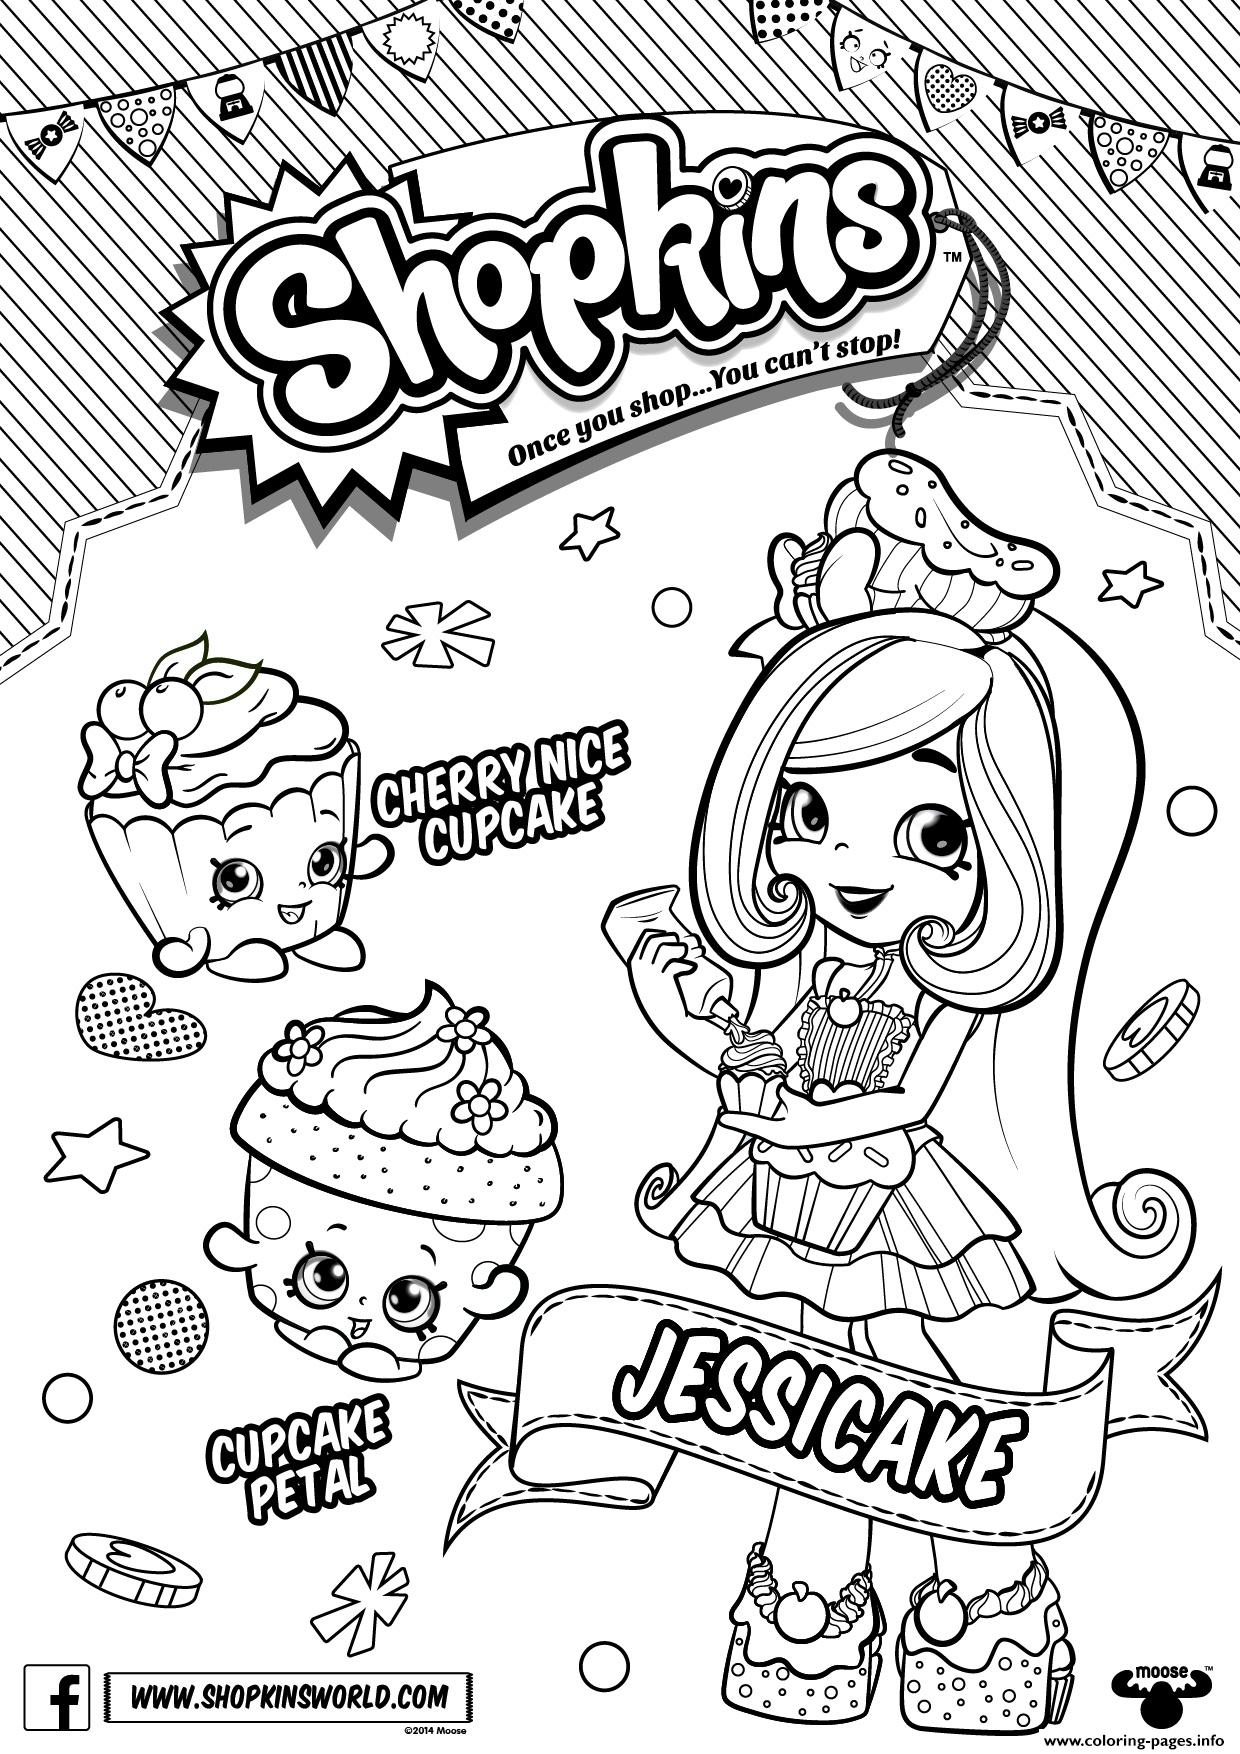 Jessicake Shopkins Shoppies Coloring Pages Printable